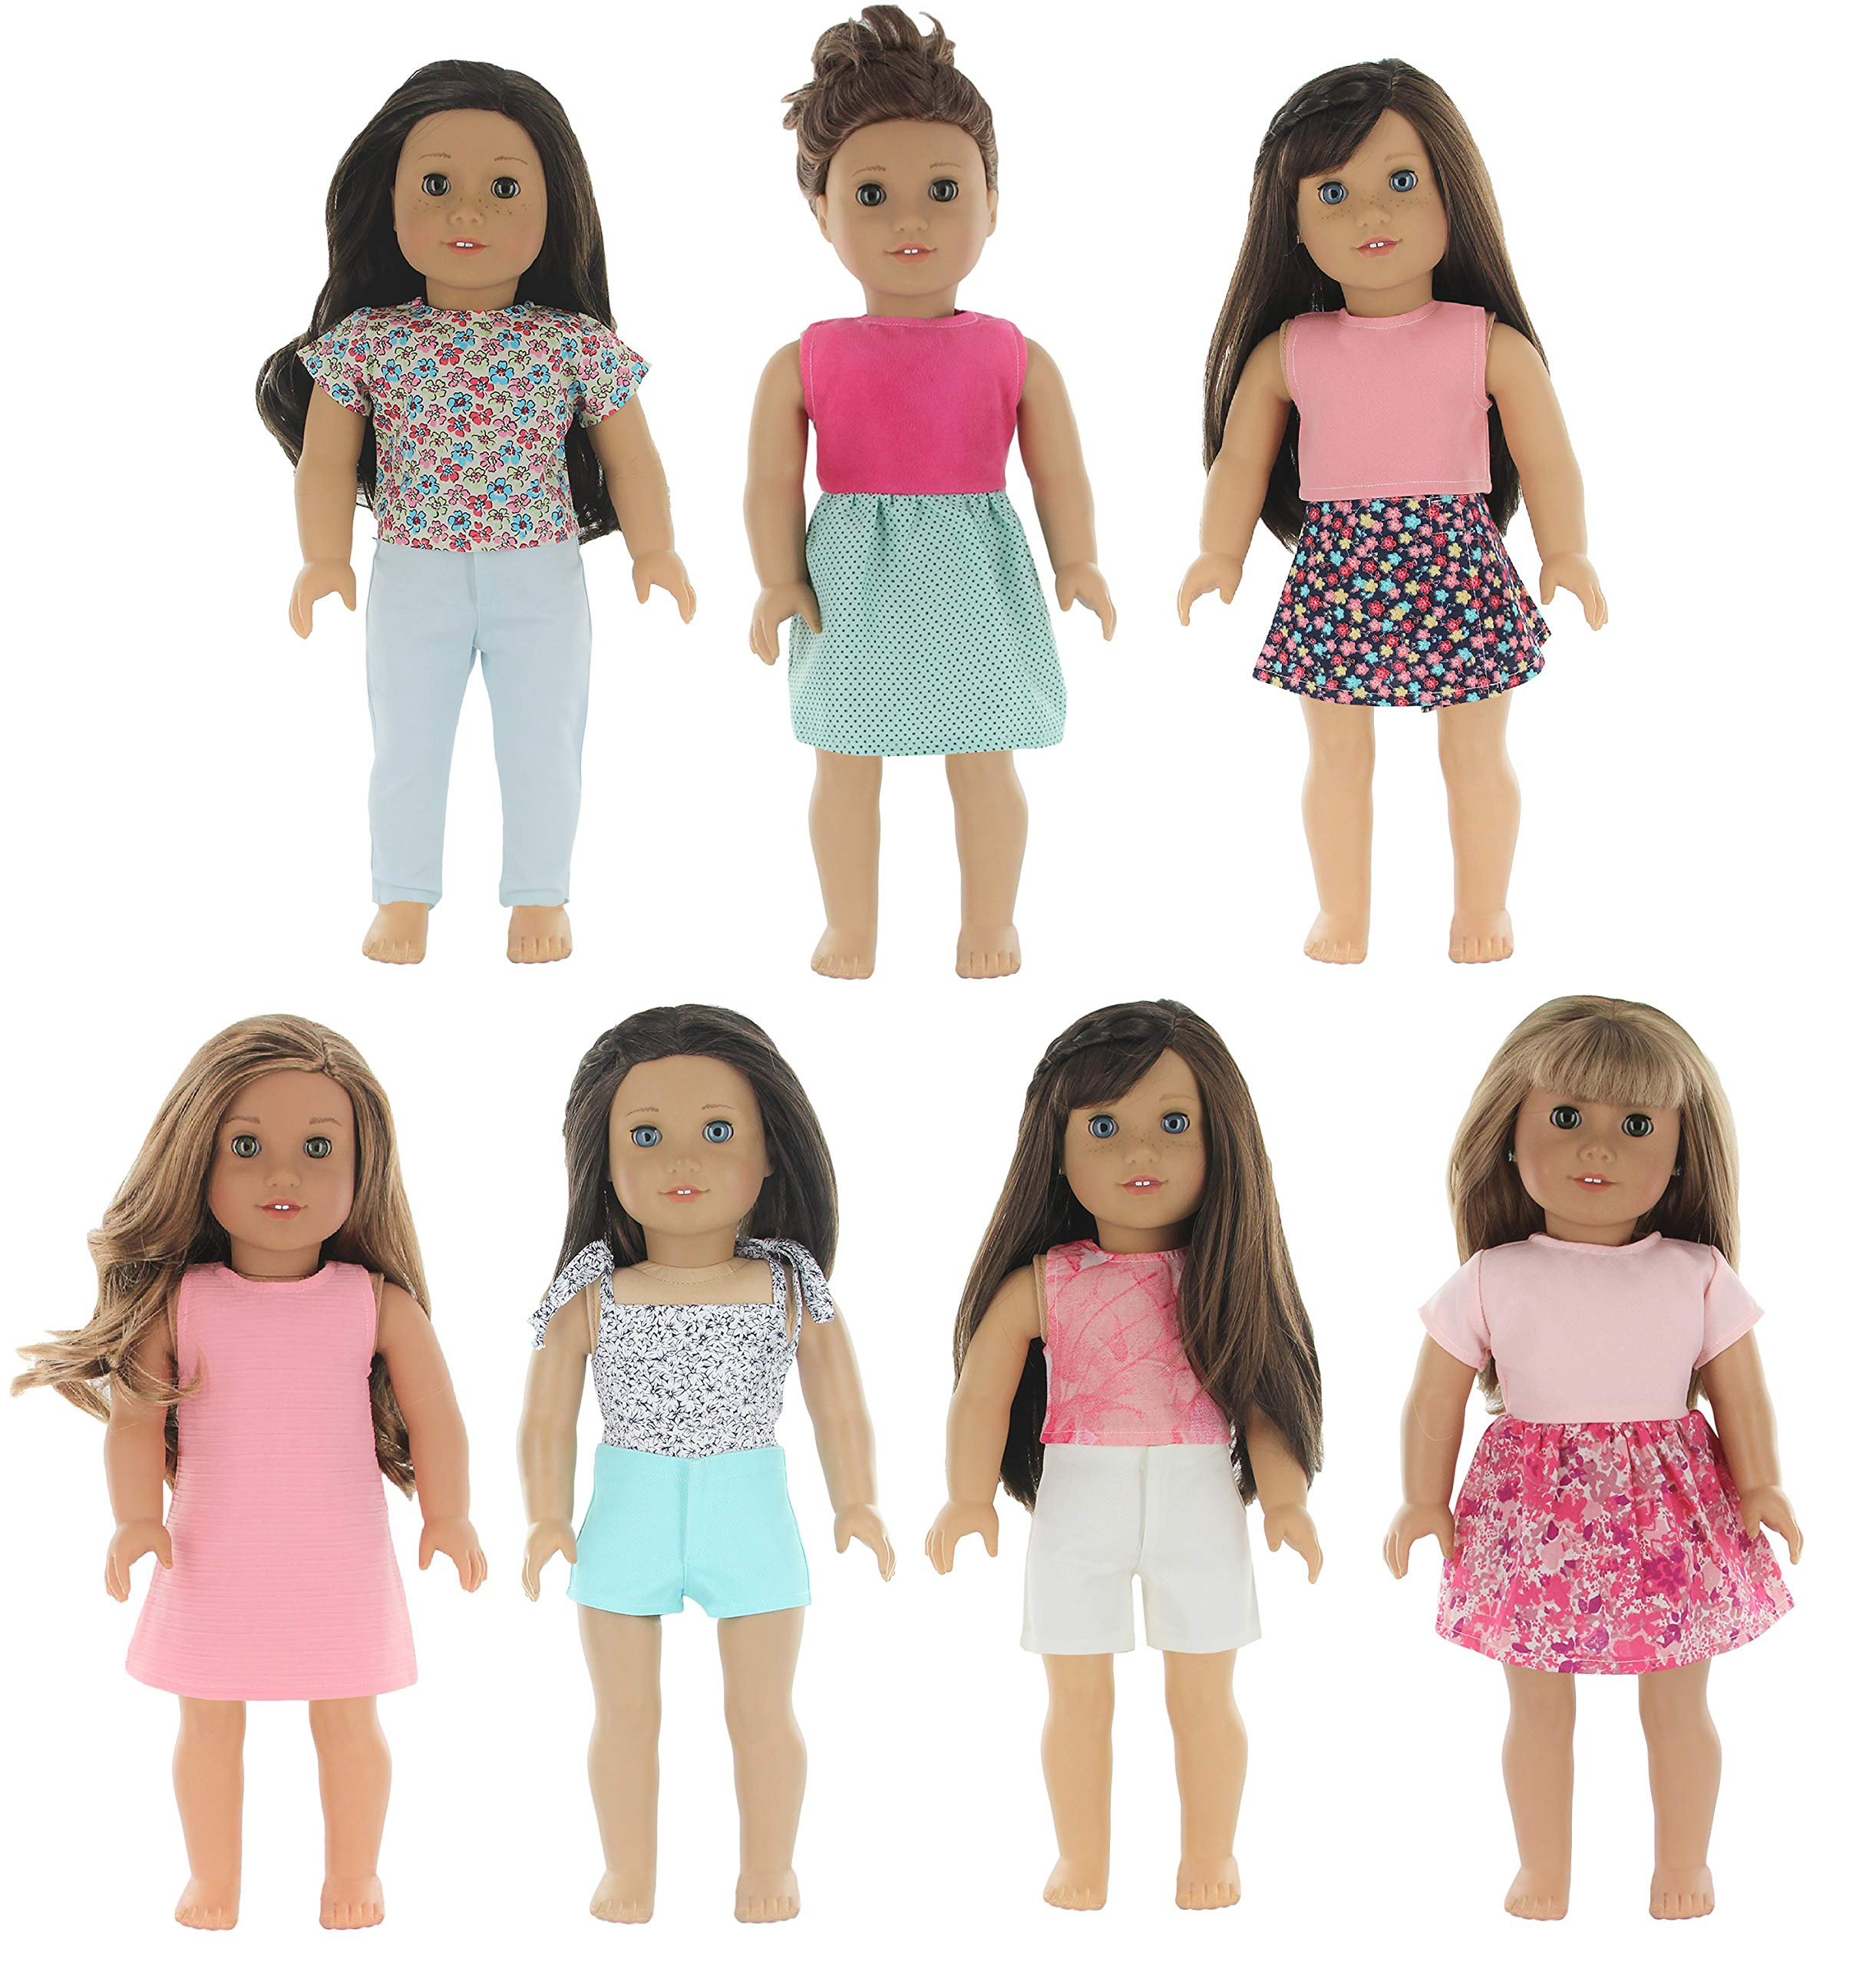 f75450071bc3 Amazon.com: PZAS Toys 7 Outfit Set, 18 Inch Doll Clothes, Compatible with  All 18 Inch Doll Clothes: Toys & Games